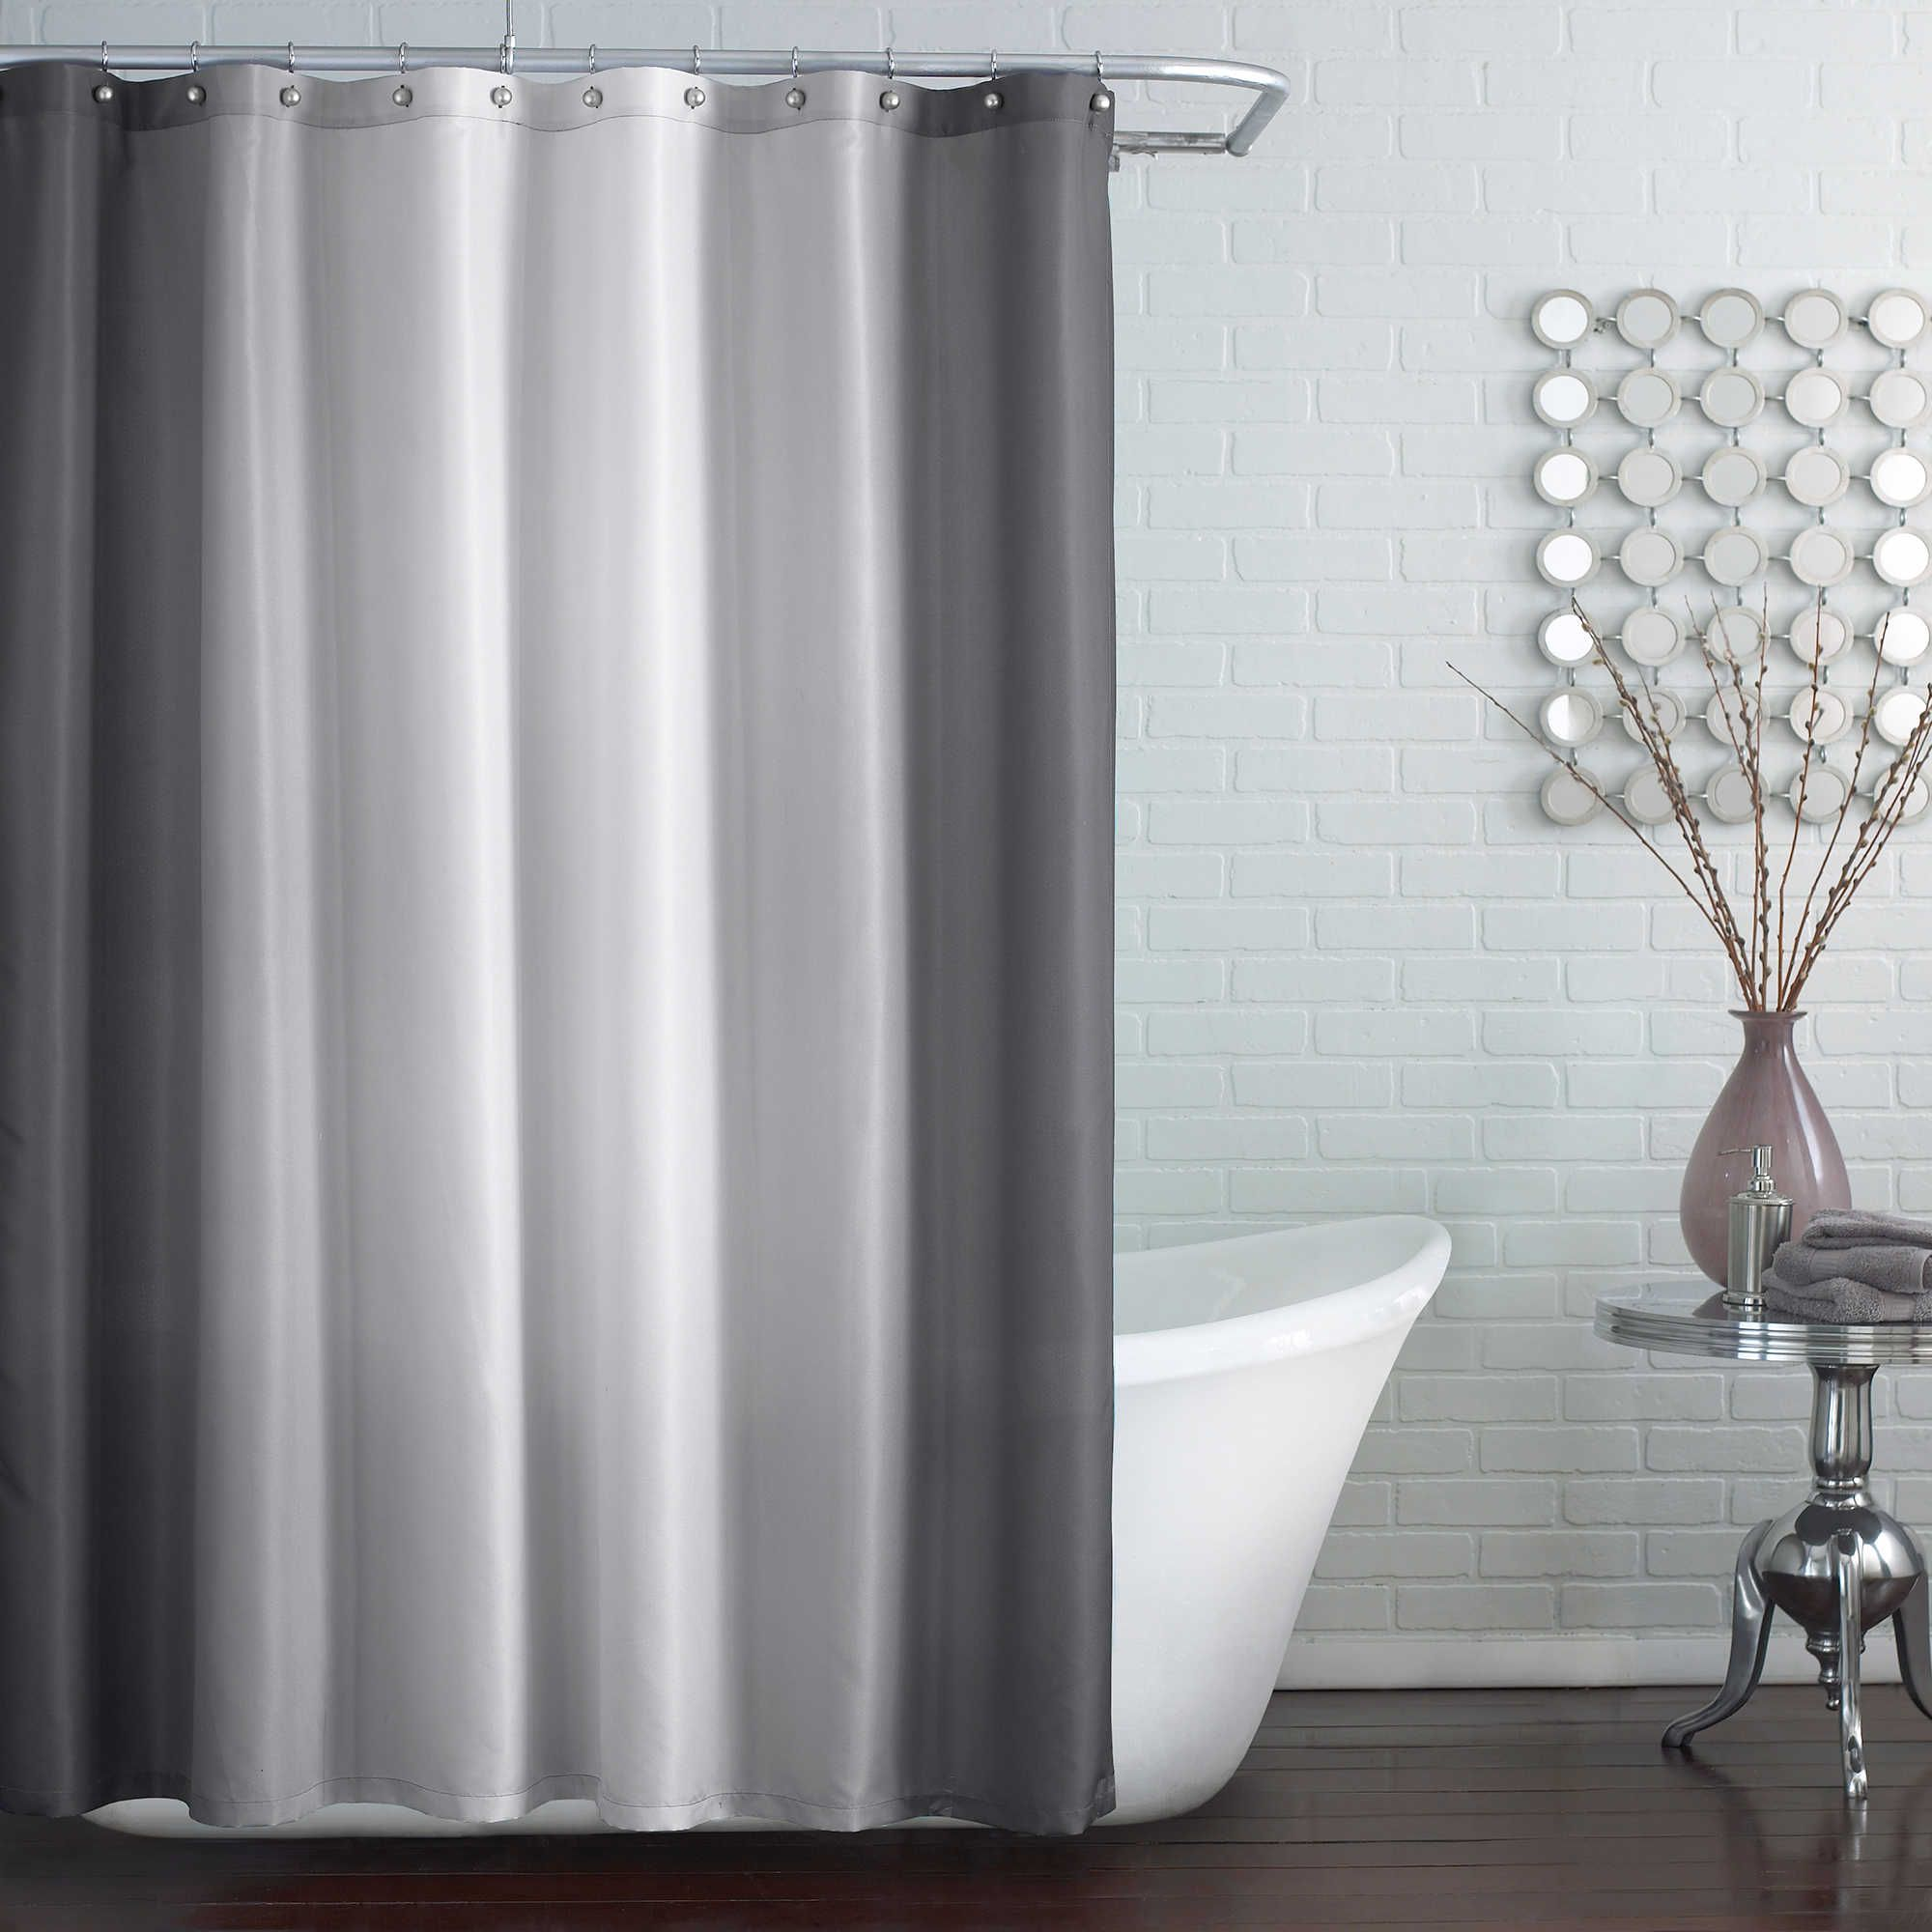 Blaire ExtraLong Inch X Inch Shower Curtain In Grey - Bed bath and beyond curtains and window treatments for small bathroom ideas